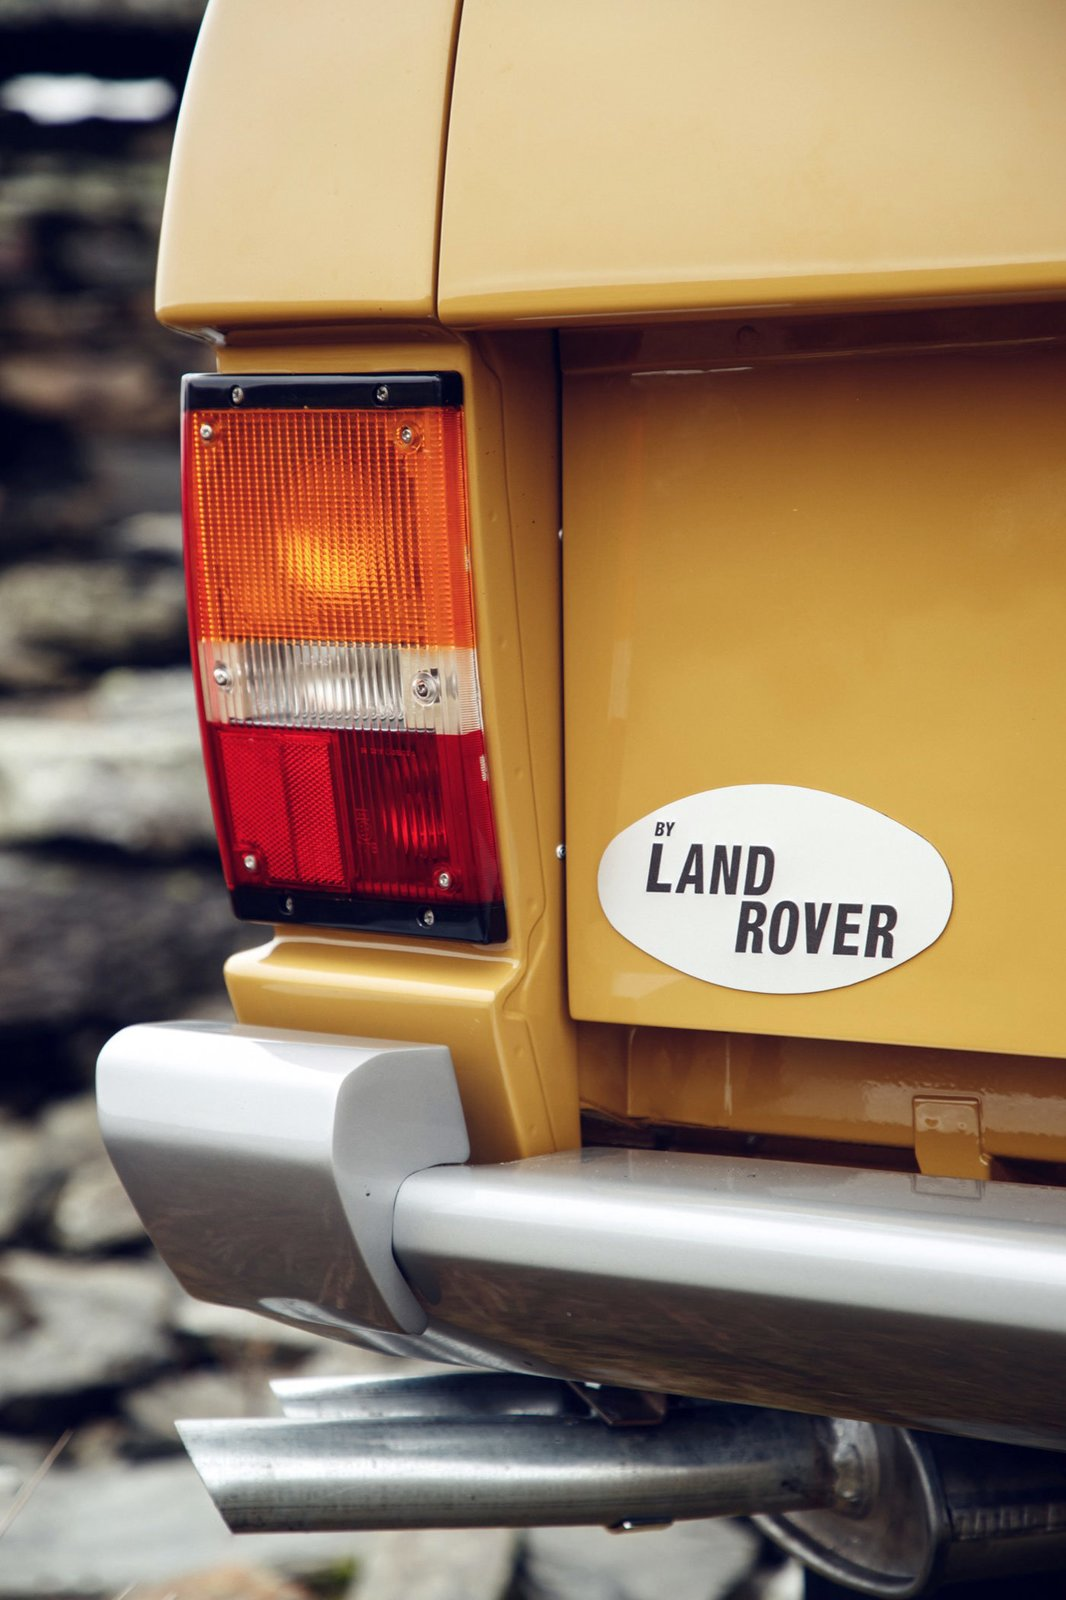 Photo 6 of 7 in 1978 Range Rover Classic Comes To The Reborn Series